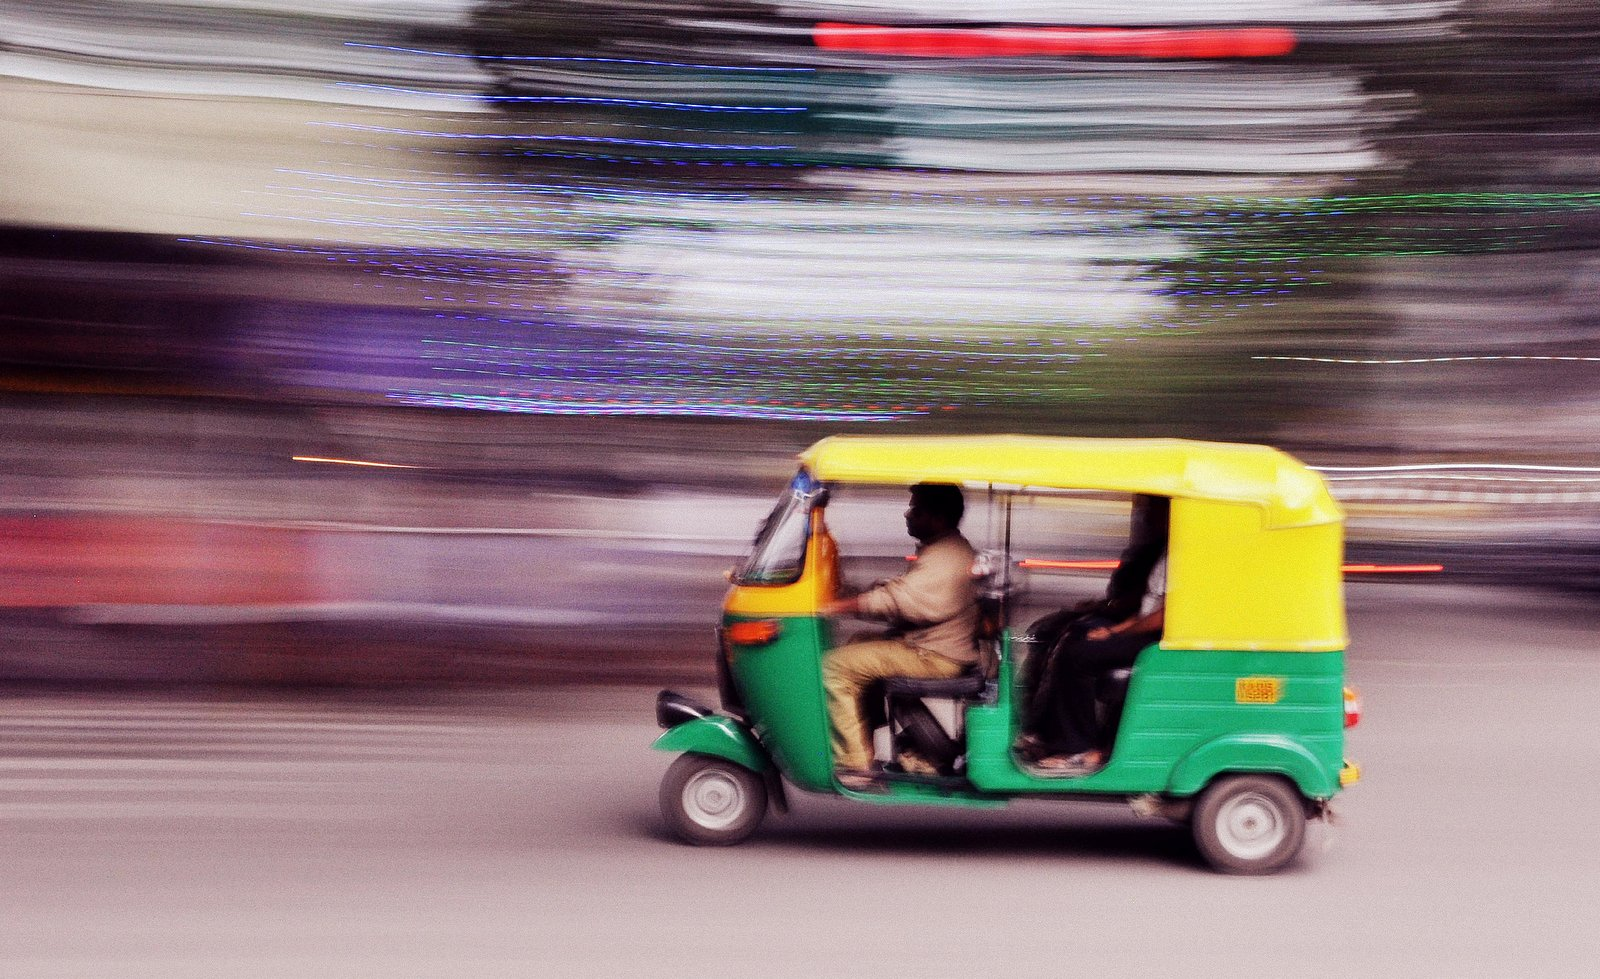 tuk tuk, Motion photography tips and technique example: Panning